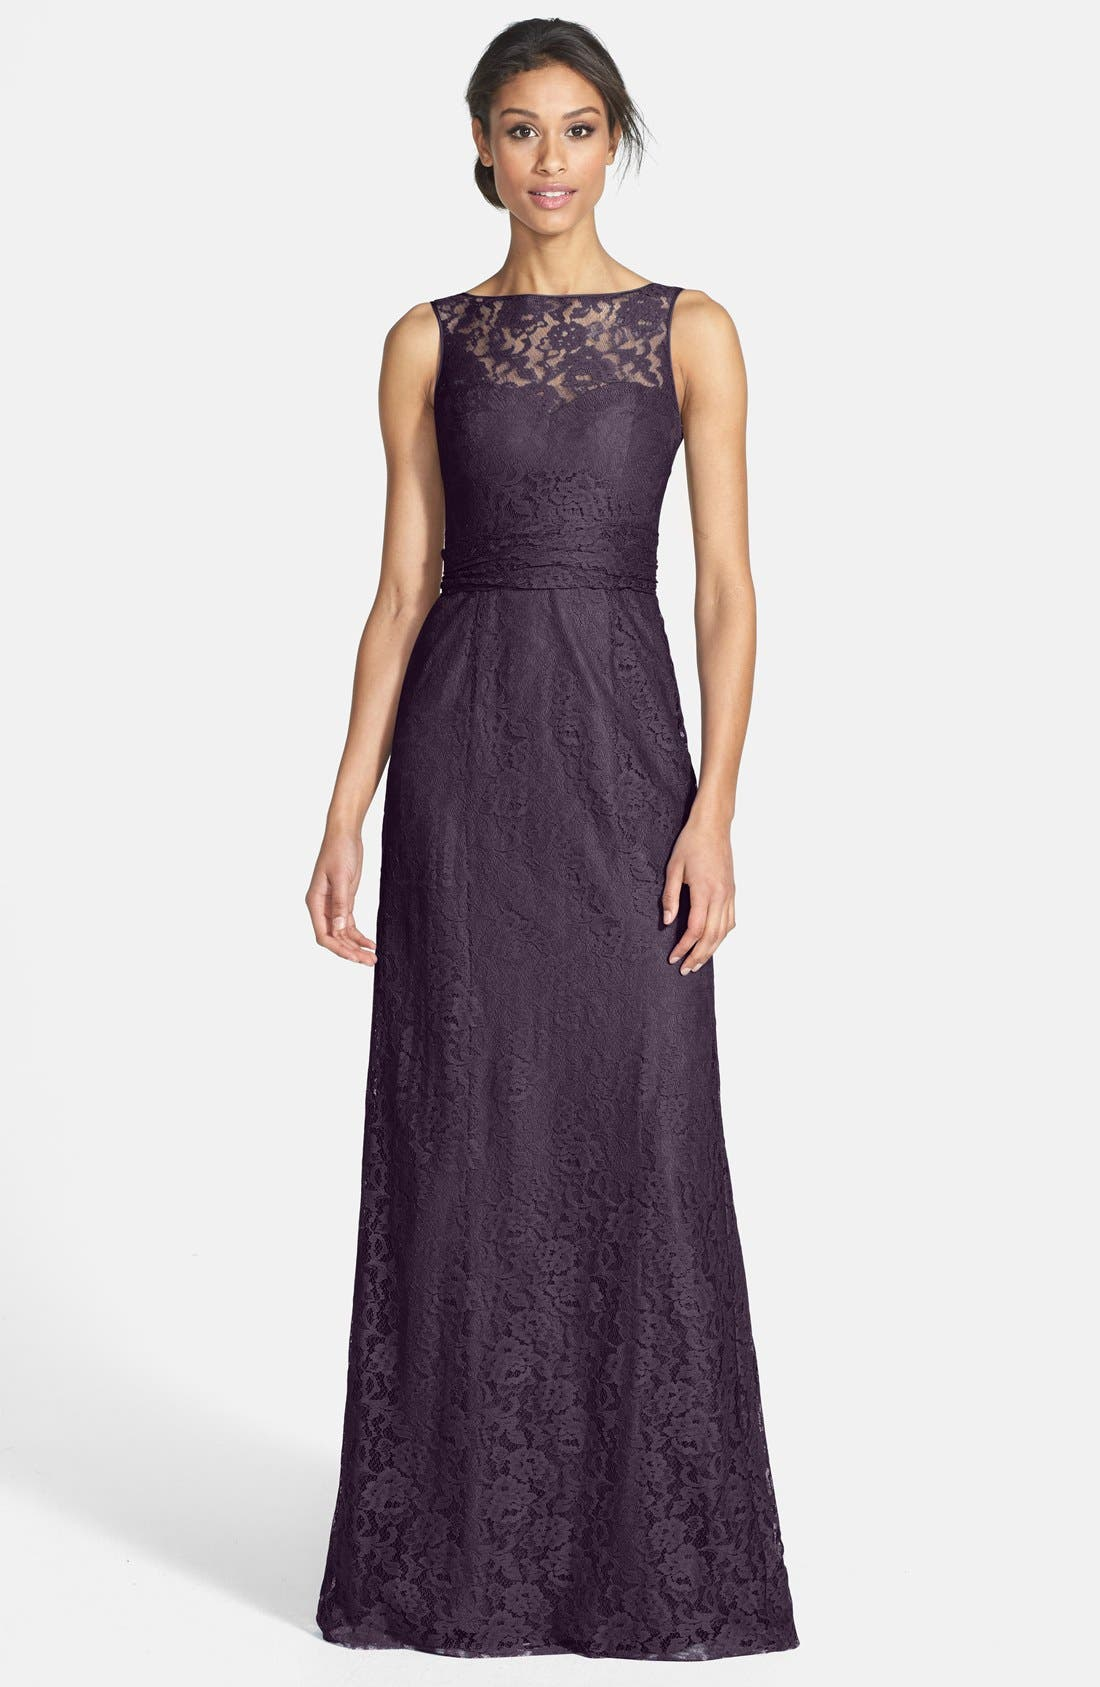 Black Long Evening Dresses Under $150